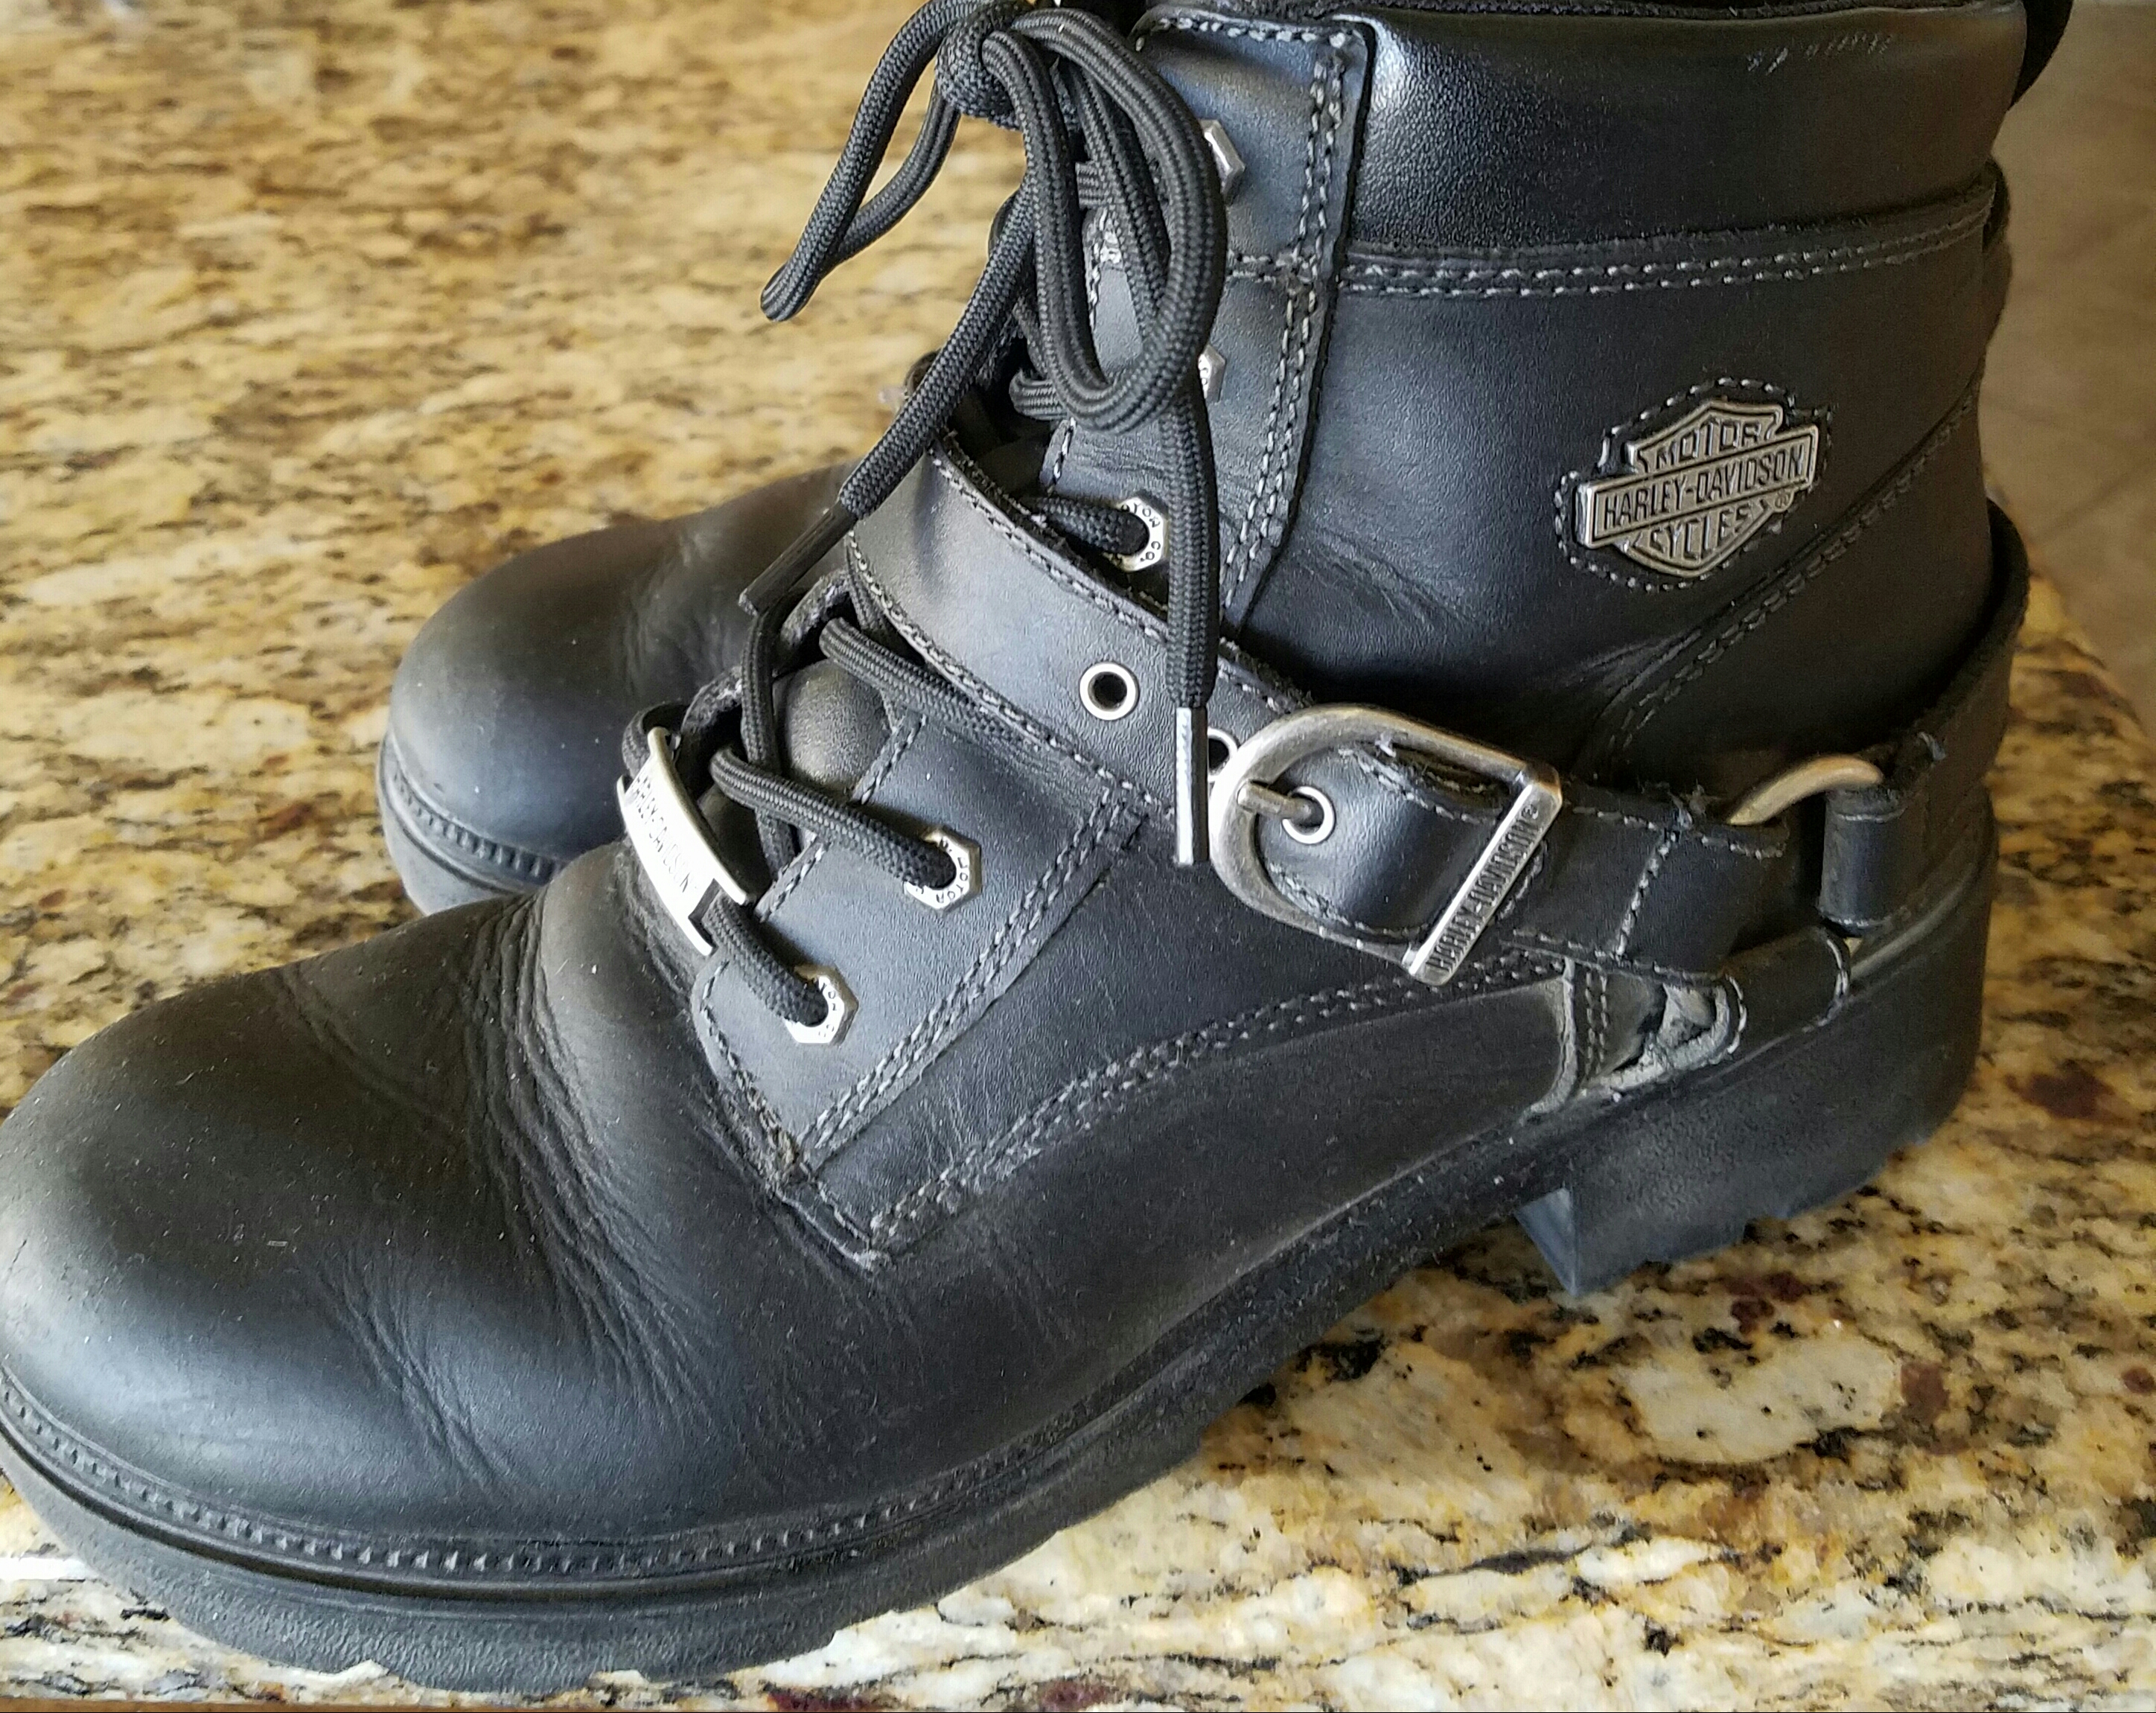 Tegan Harley Davidson Review: Great Boot